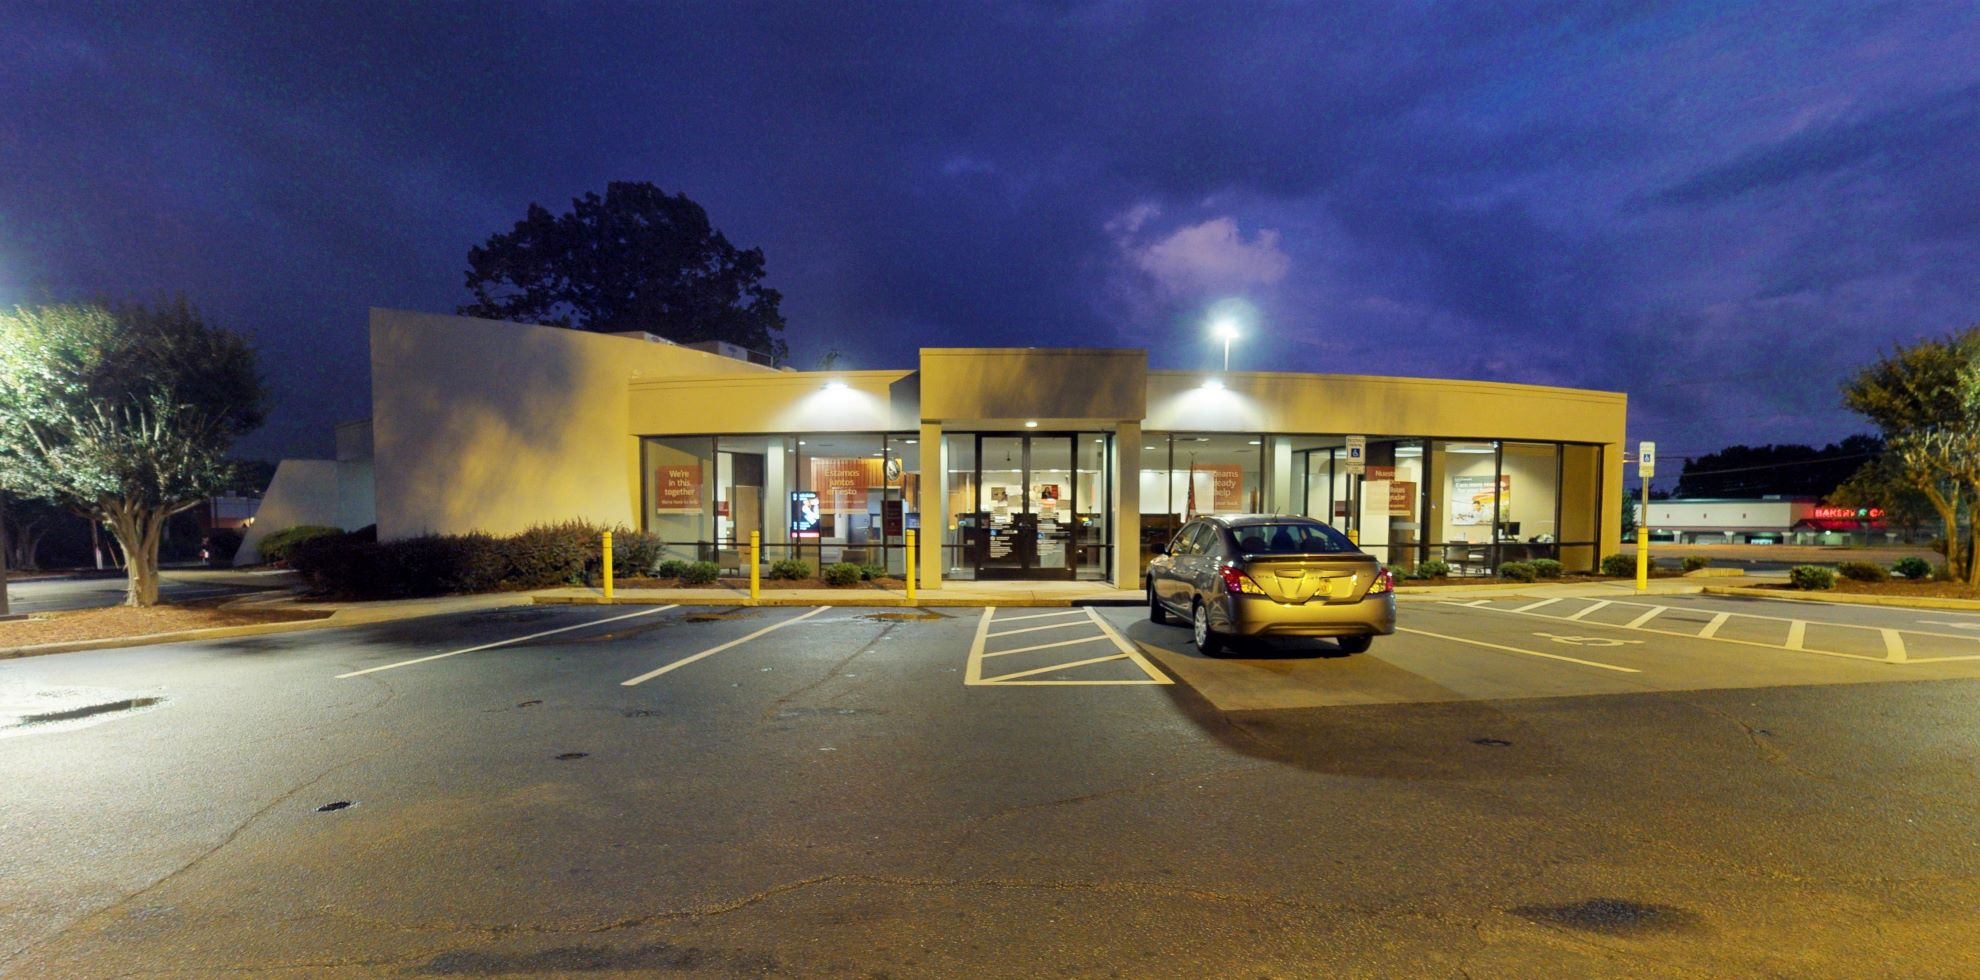 Bank of America financial center with drive-thru ATM and teller | 20 Farrs Bridge Rd, Greenville, SC 29617